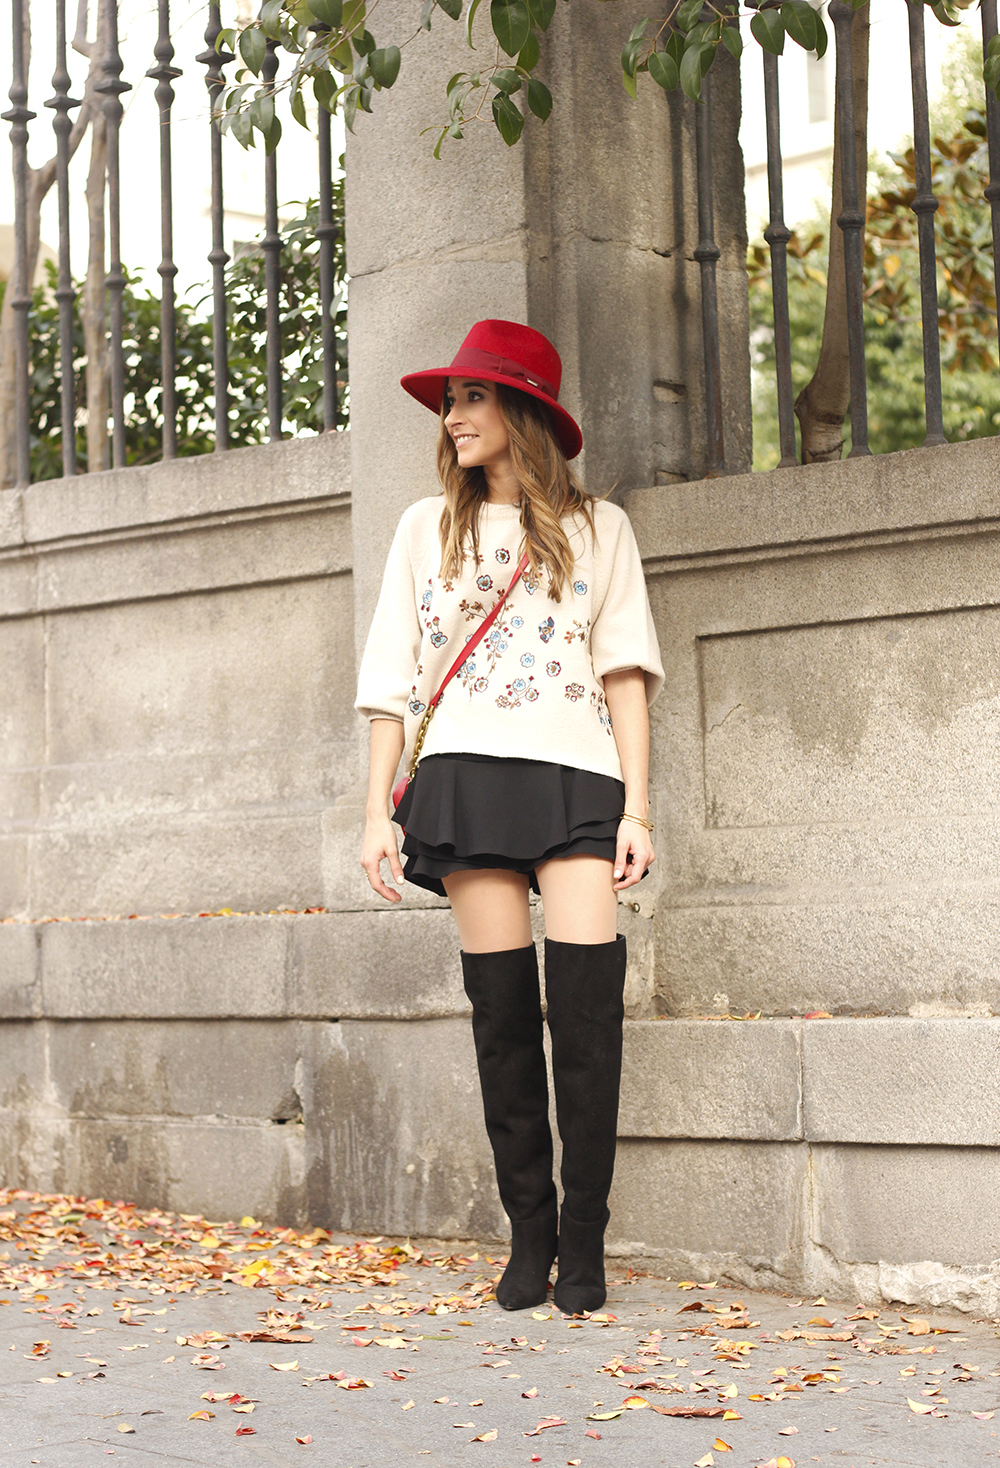 beige jersey with embroidered flowers over the knee black boots red hat street style fashion inspiration outfit01